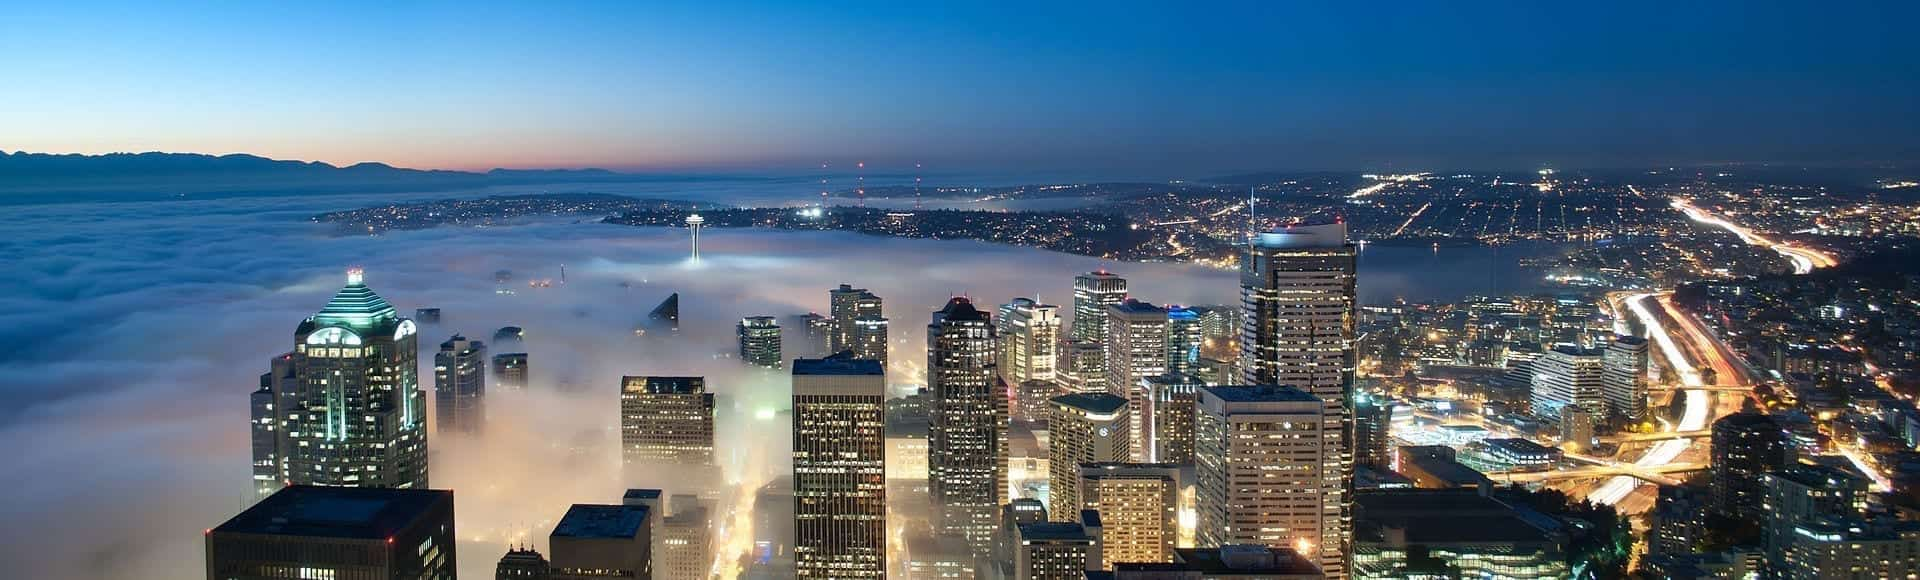 A nighttime view of downtown Seattle with its high-raise buildings partially obscured by fog